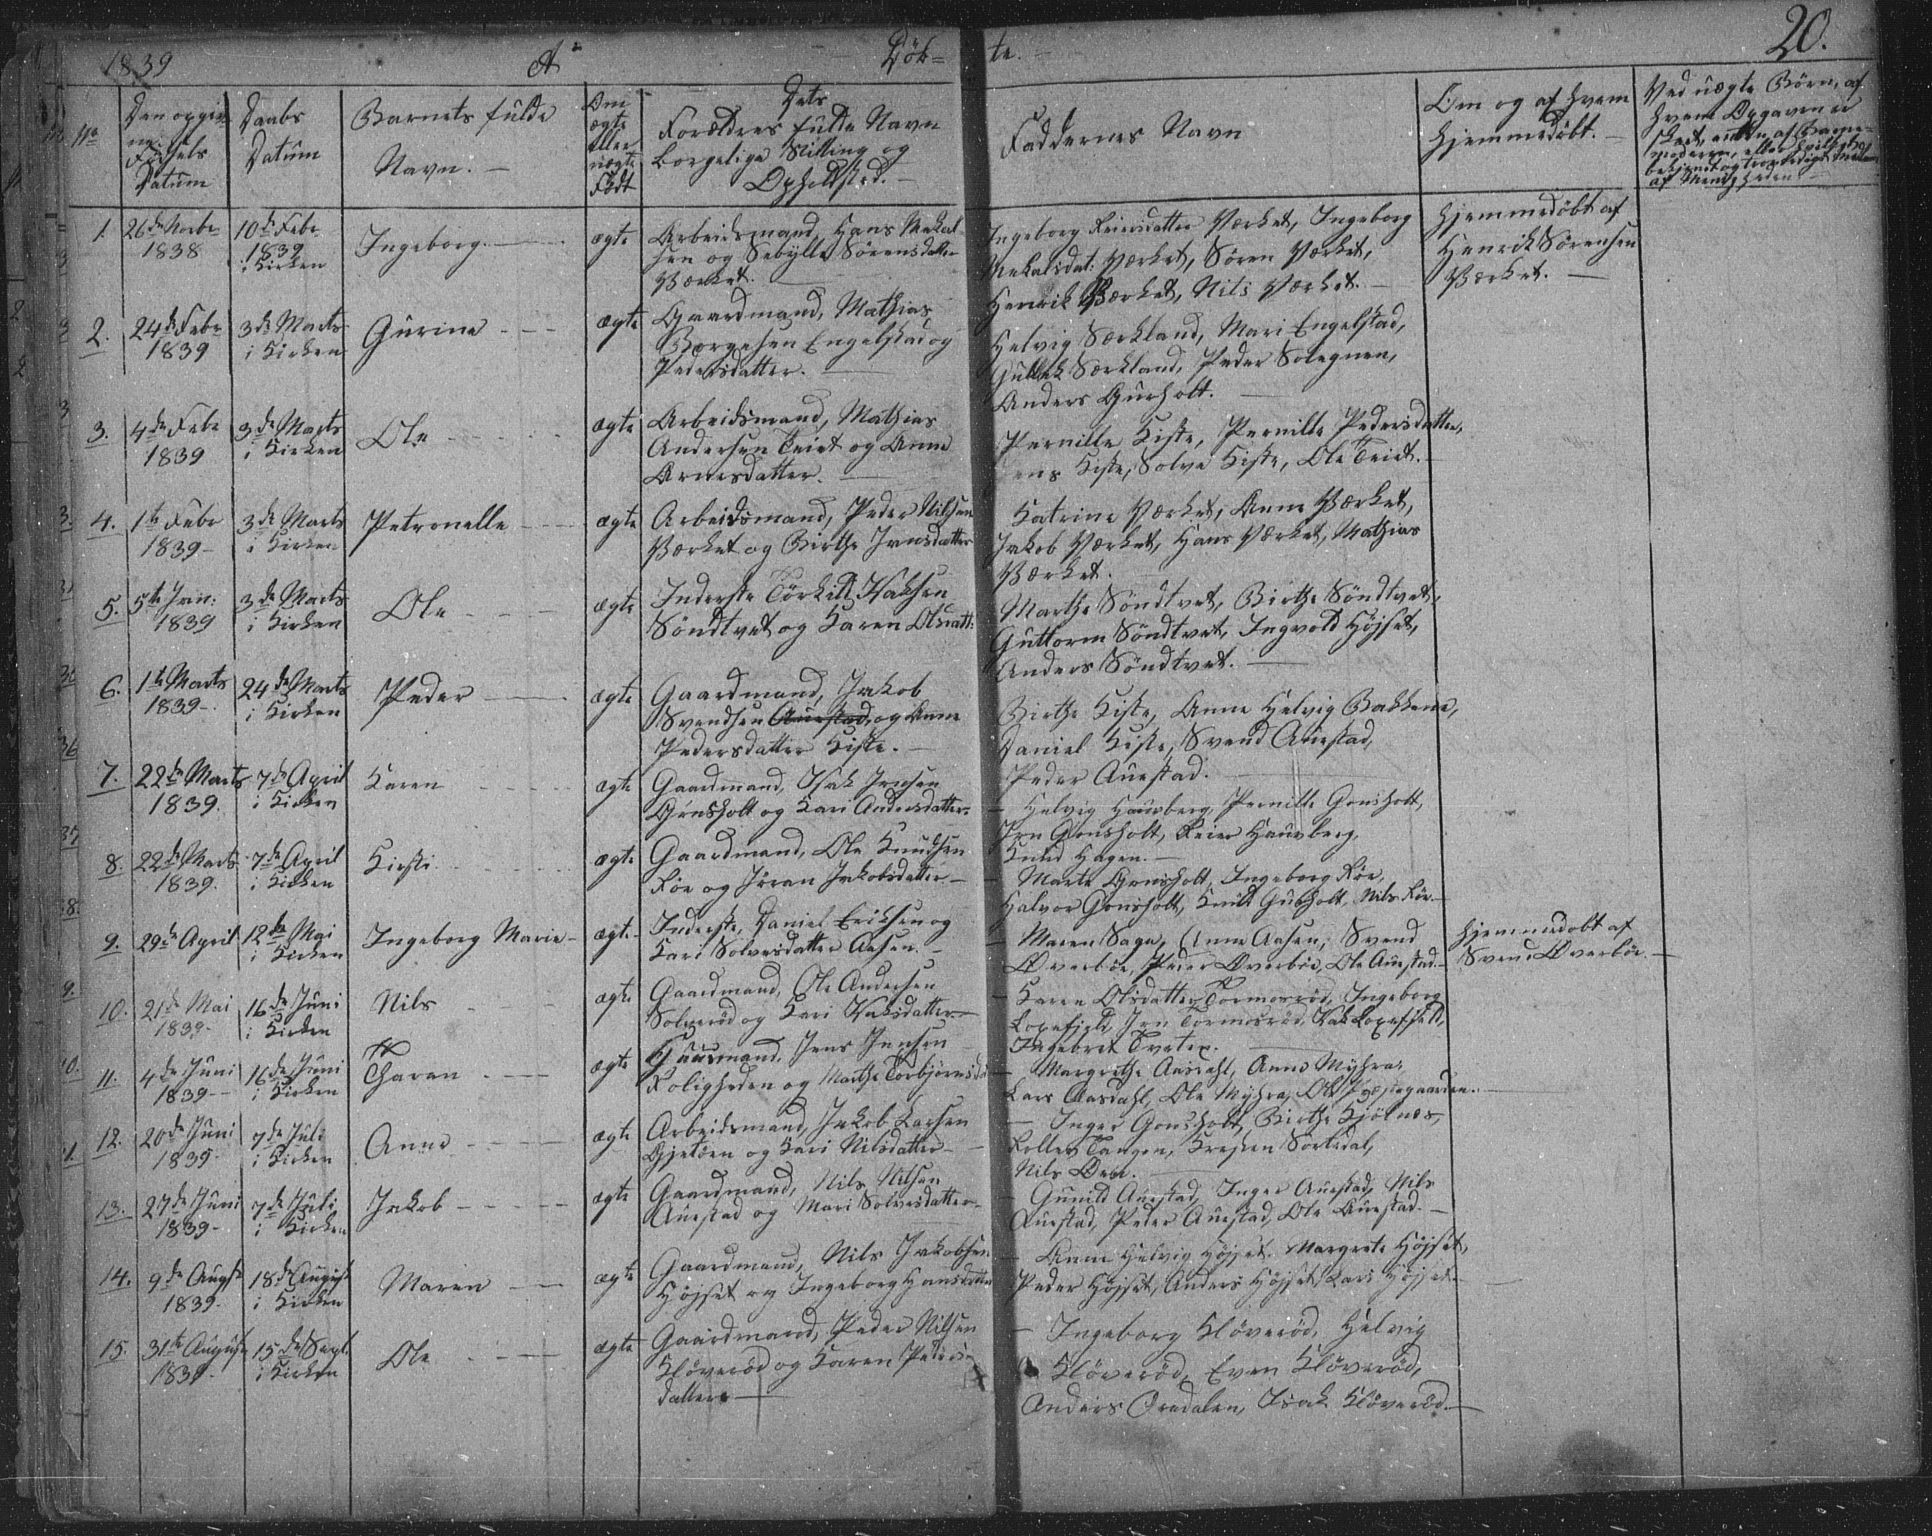 SAKO, Siljan kirkebøker, F/Fa/L0001: Parish register (official) no. 1, 1831-1870, p. 20